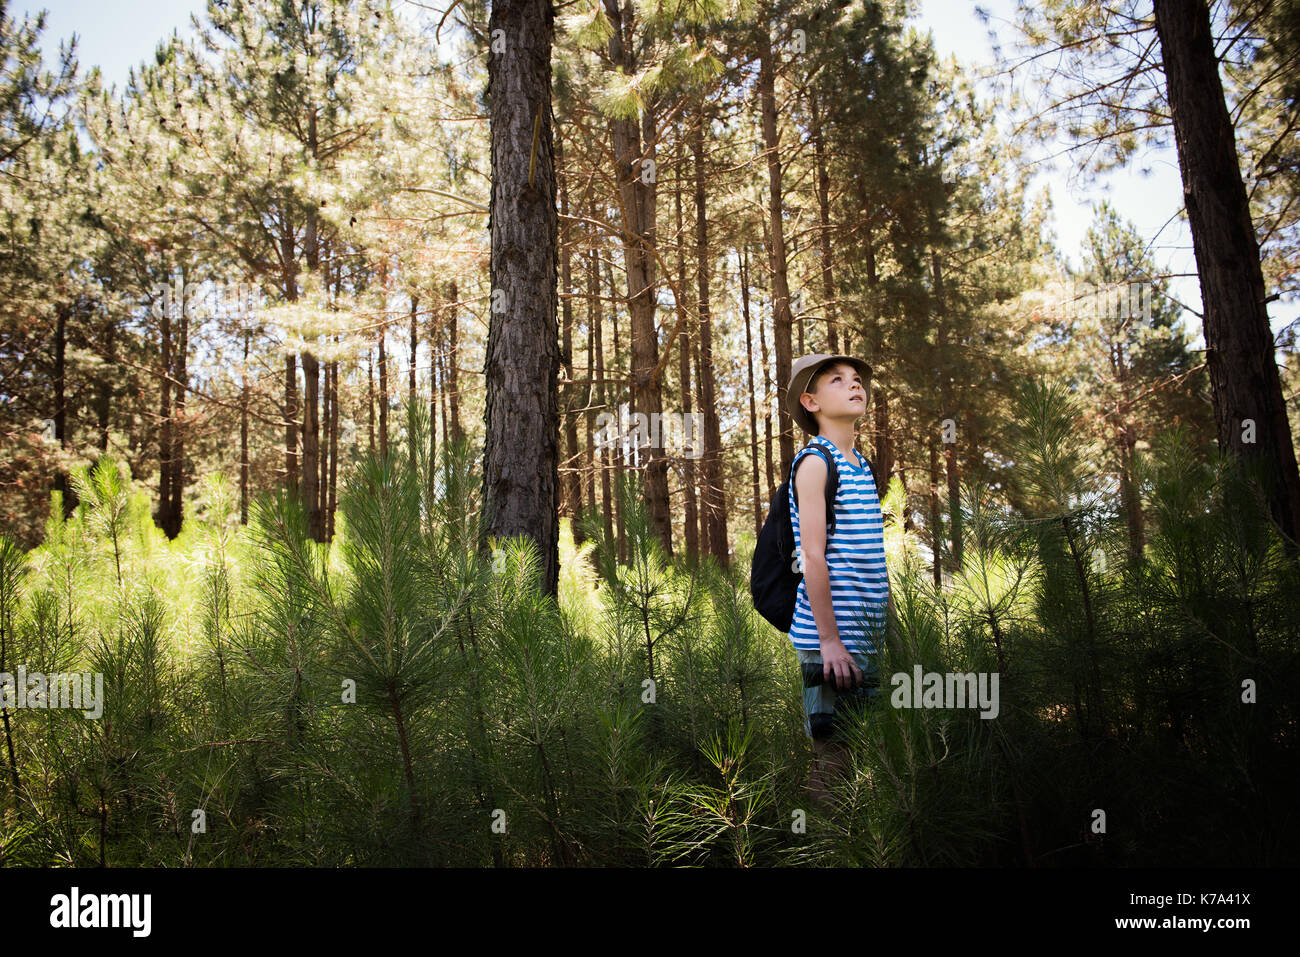 Boy hiking in woods - Stock Image